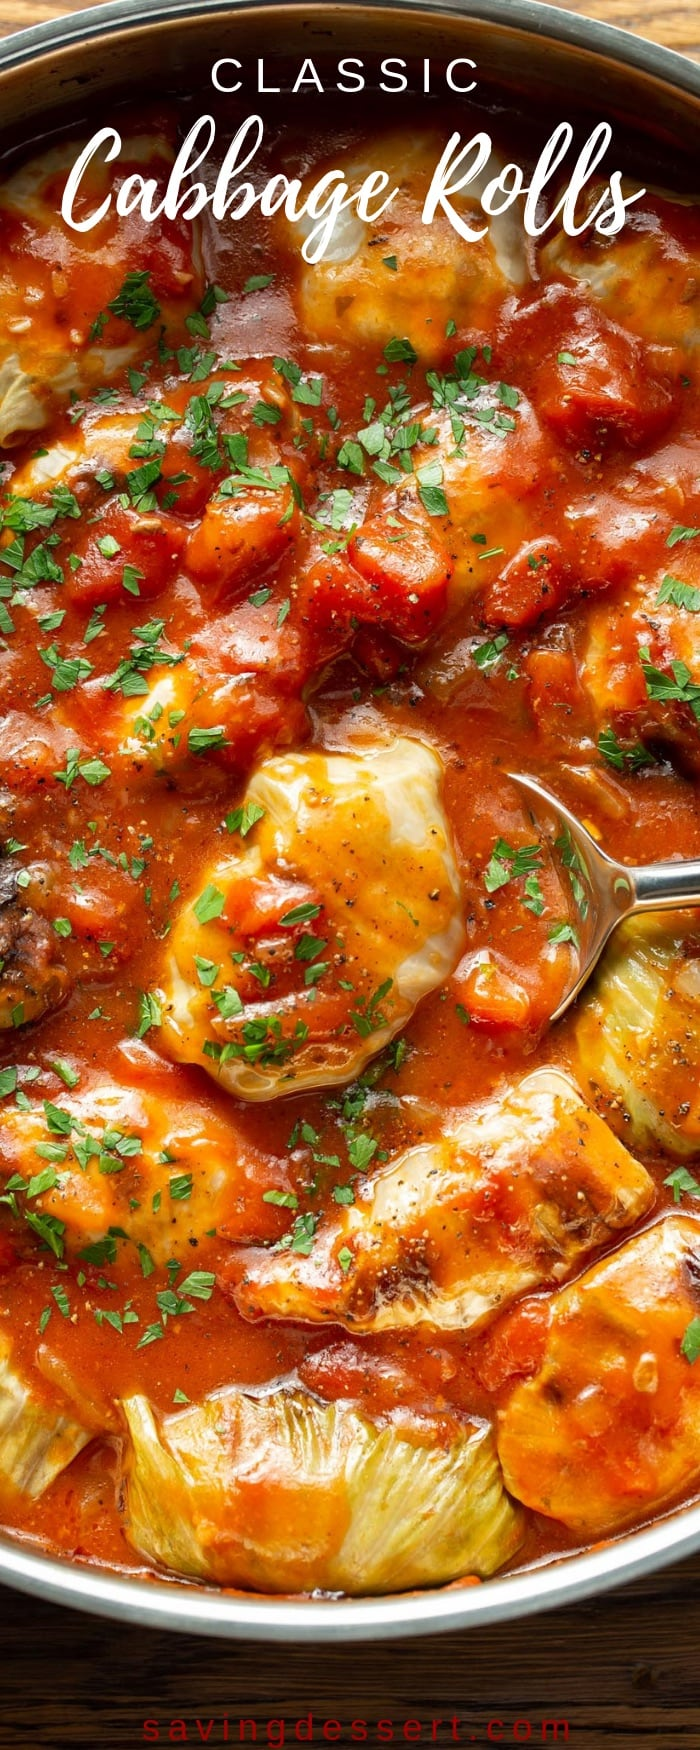 Classic Cabbage Rolls Recipe - with tender cabbage leaves stuffed with rice, seasoned ground beef and caramelized onions simmered in a rich tomato sauce that's a little sweet and a just a tad sour, for a lovely complex flavor and mild bite. #savingroomfordessert #cabbagerolls #classiccabbagerolls #cabbagerollsrecipe #groundbeef #cabbage #tomatosauce #dinner #comfortfood